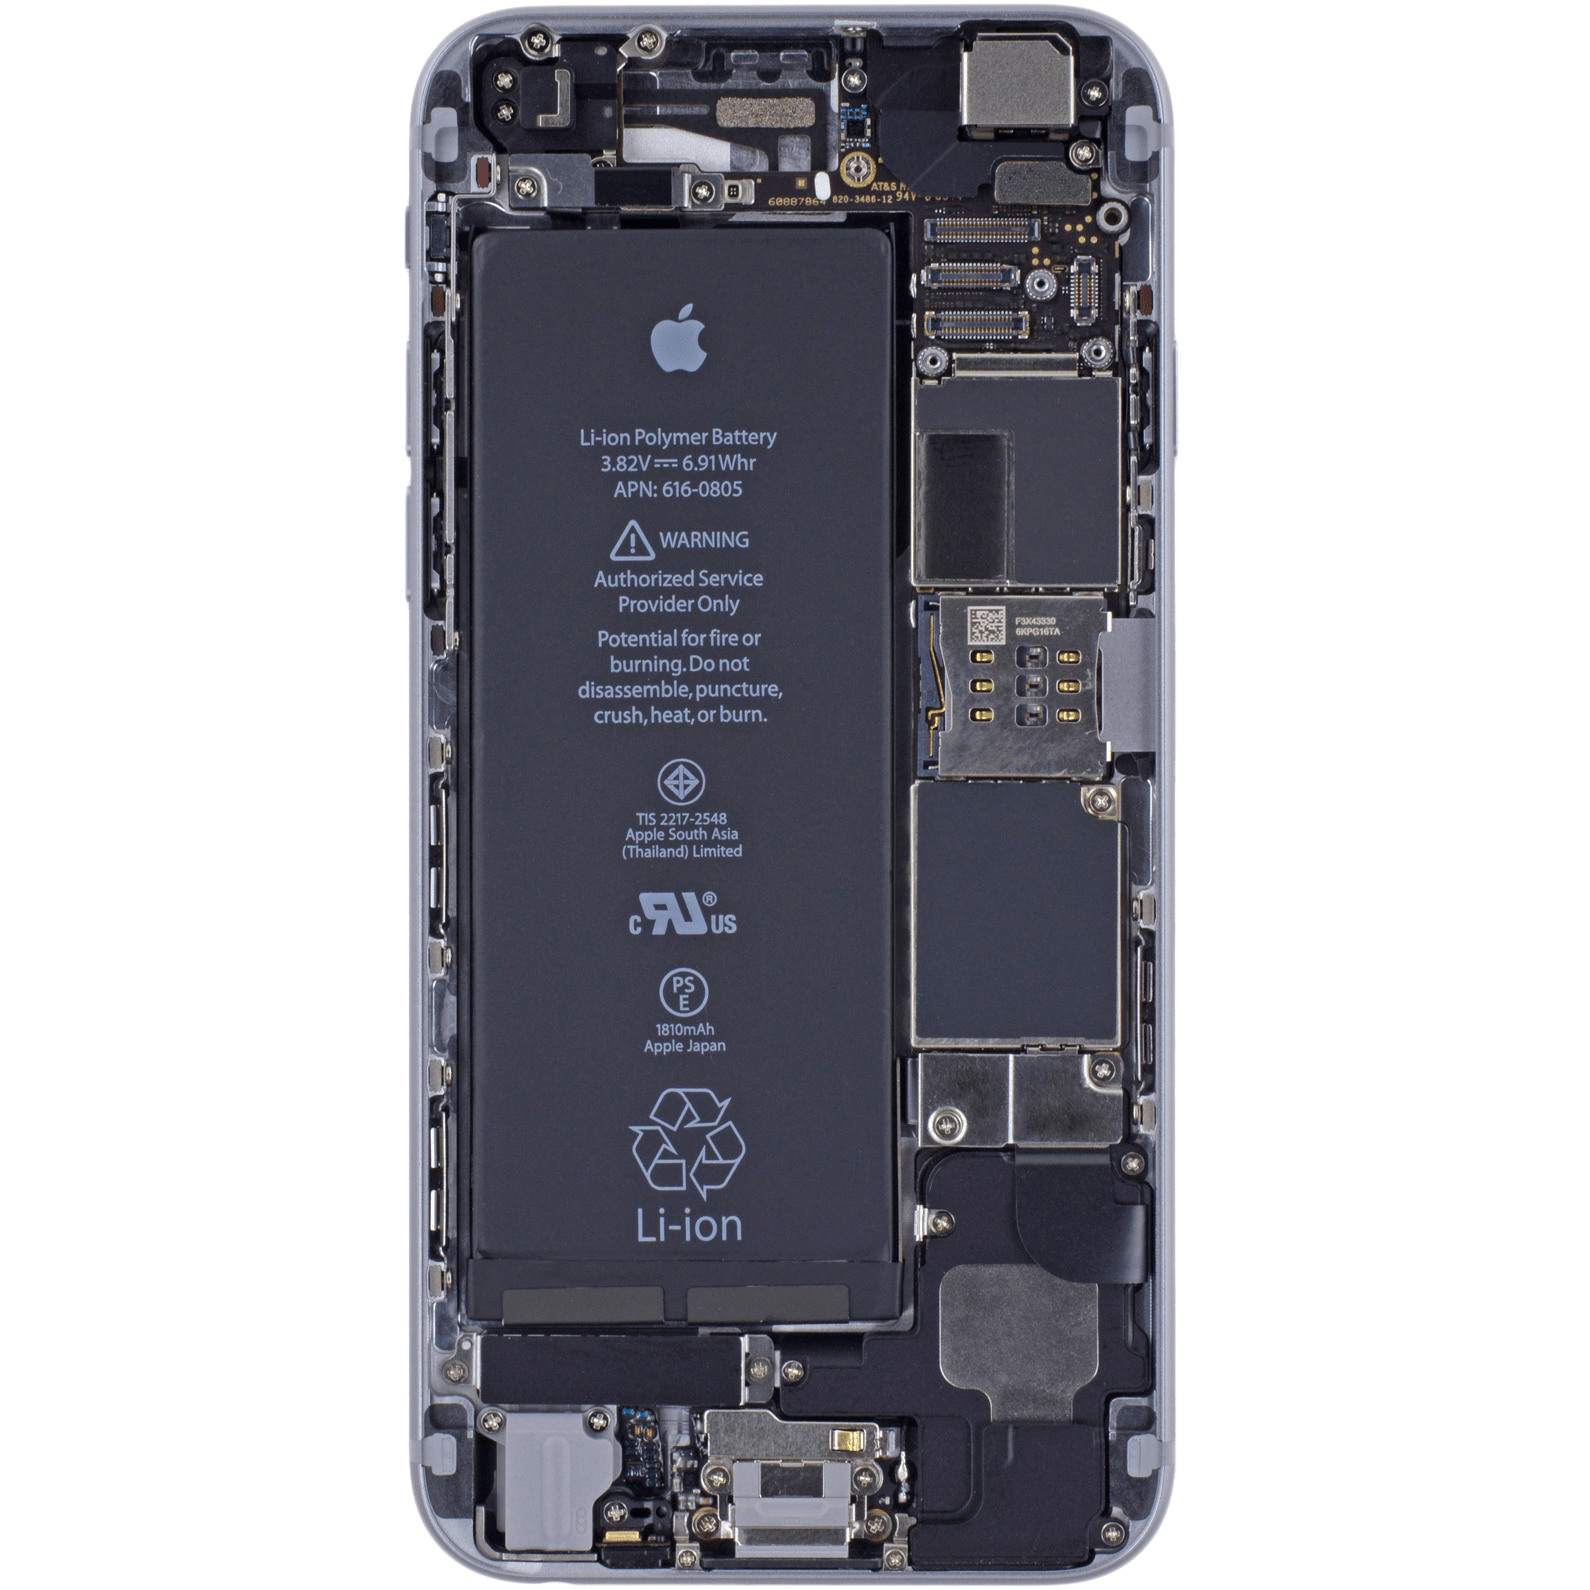 X ray vision internals wallpaper for the iphone 6 iphone 6 plus ipad air download